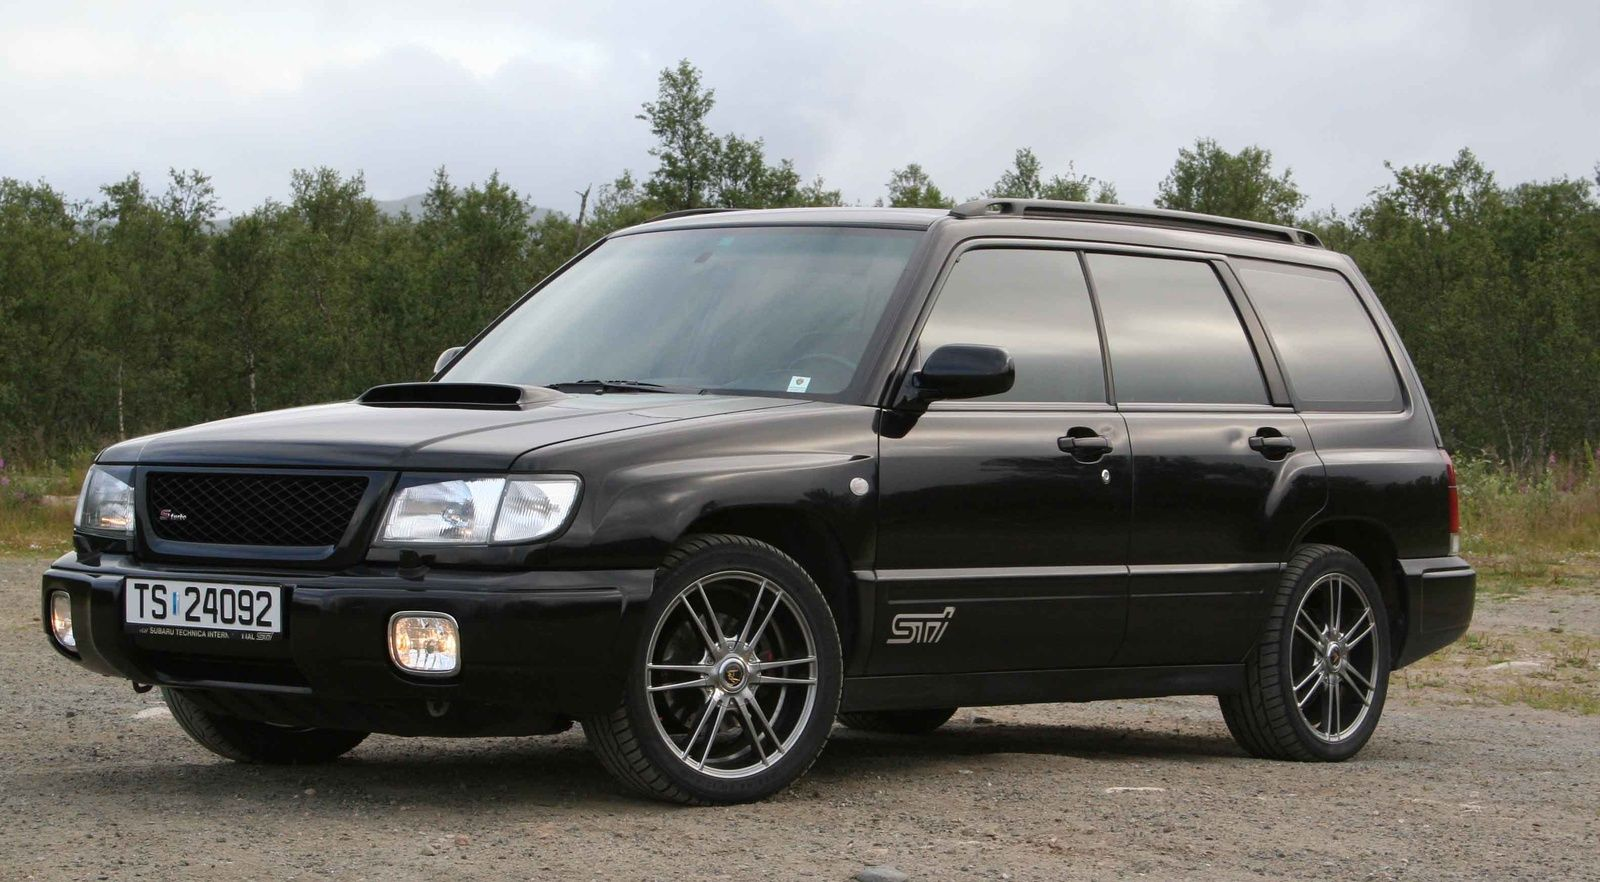 Subaru Forester S AWD Subaru Forester Sti, Repair Manuals, Vehicles, Cars  Motorcycles,